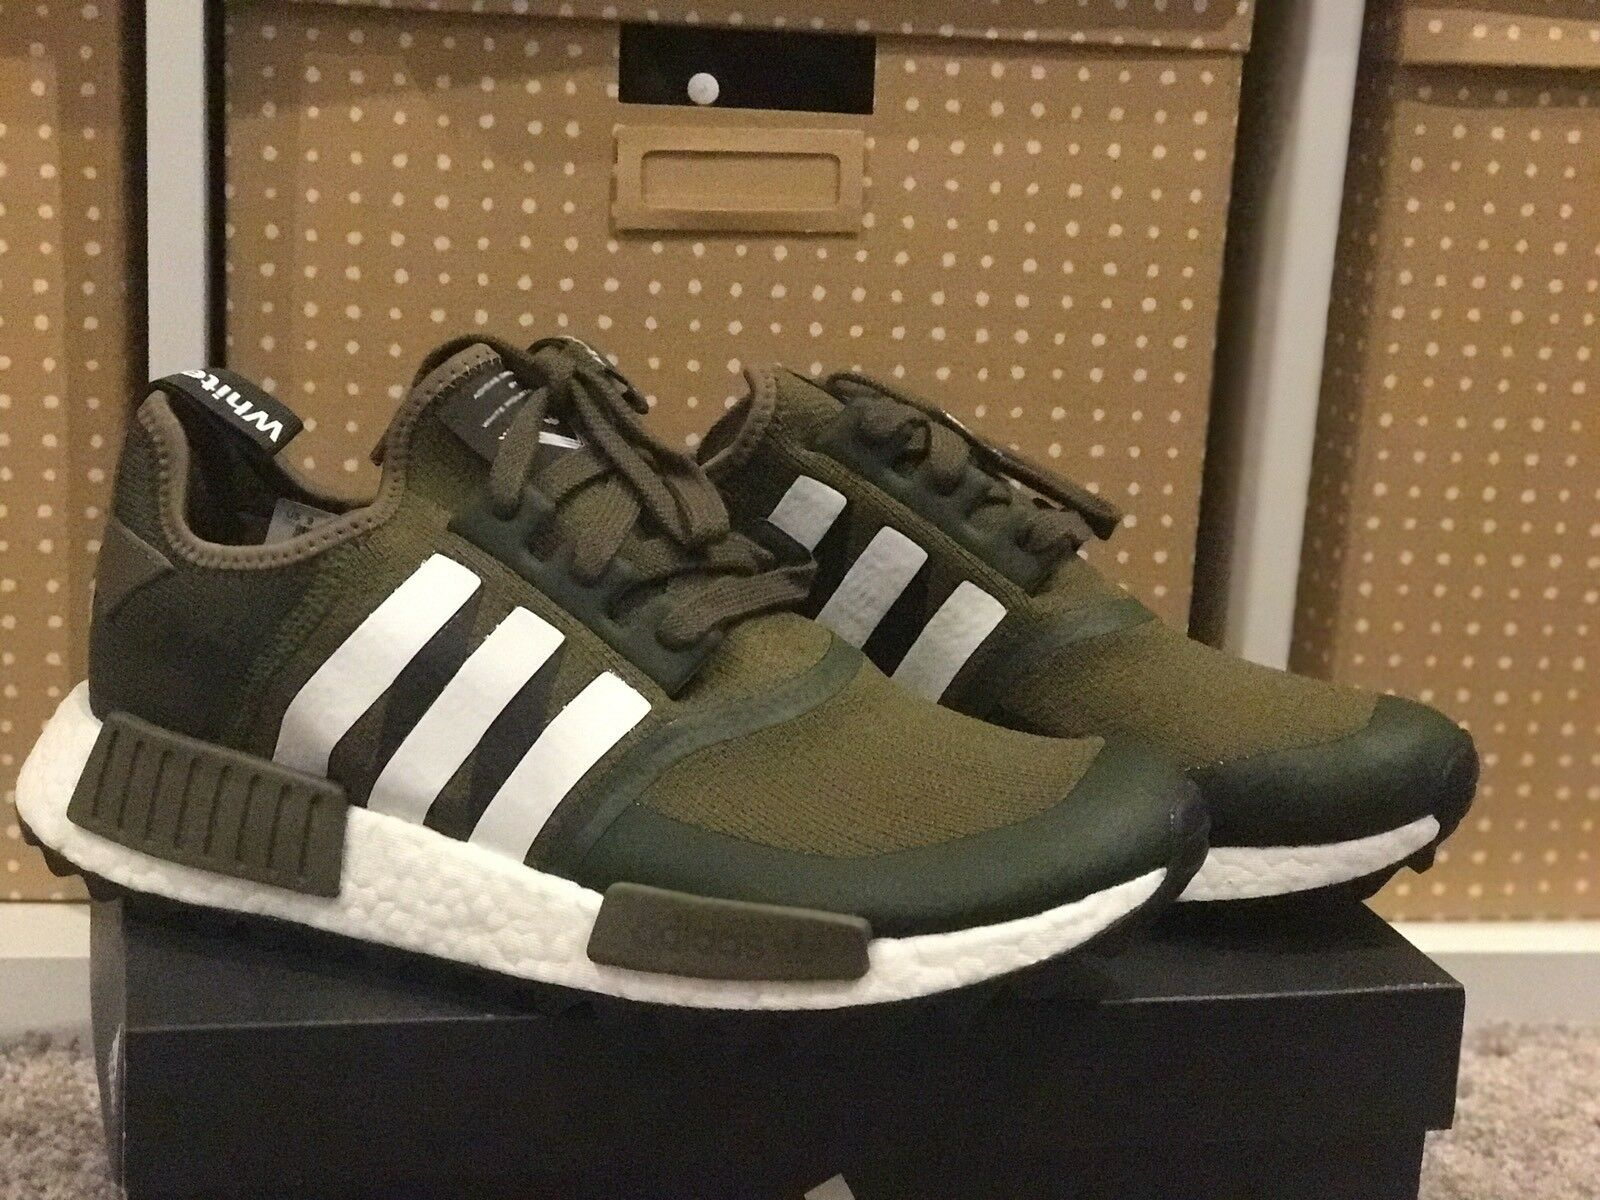 Adidas NMD WM Trail CG3647 White Mountaineering Trace Olive Size 9